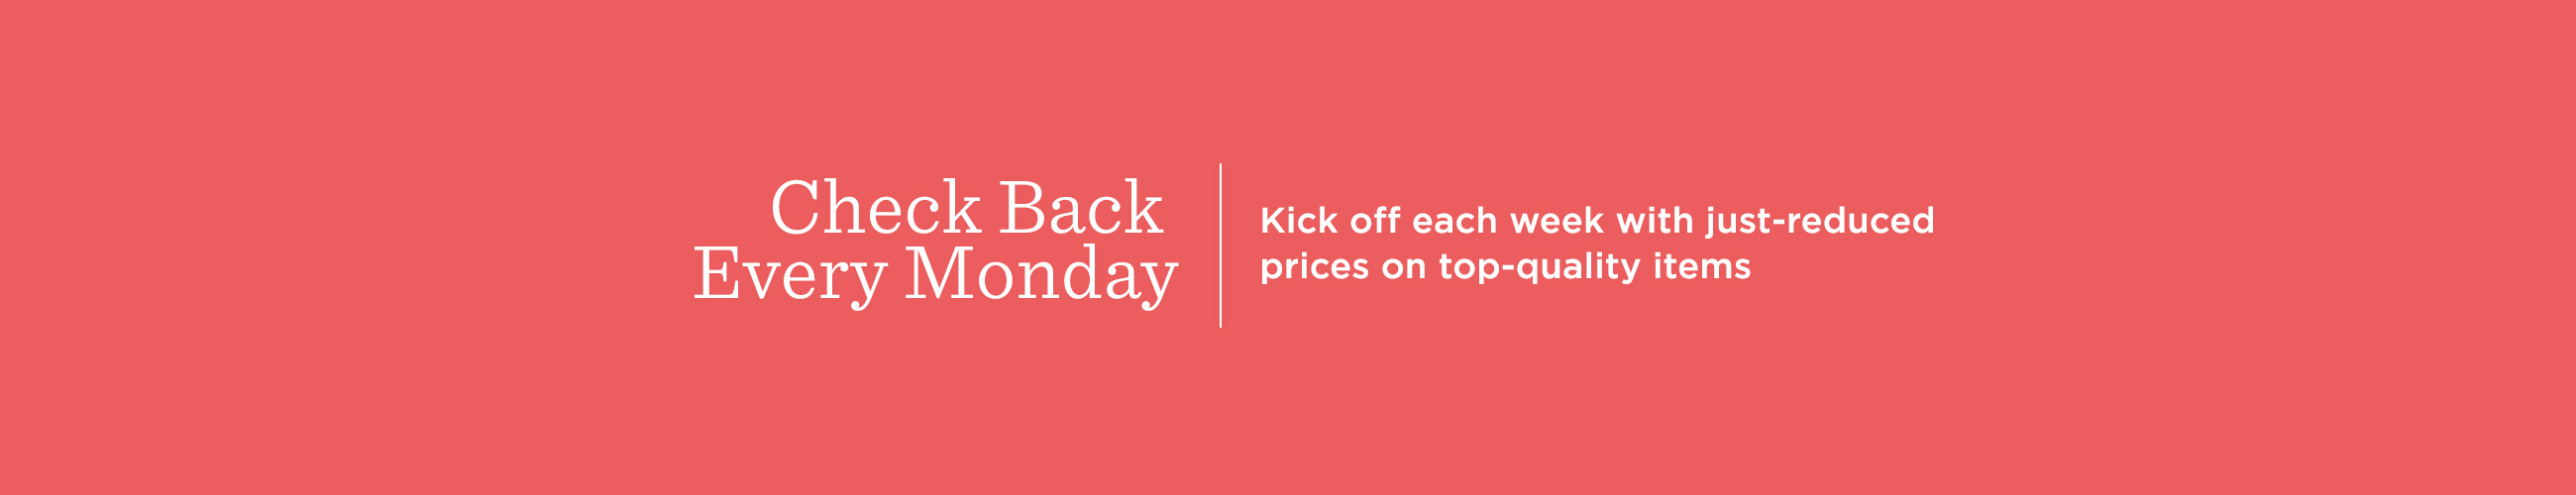 Check Back Every Monday.  Kick off each week with just-reduced prices on top-quality items.